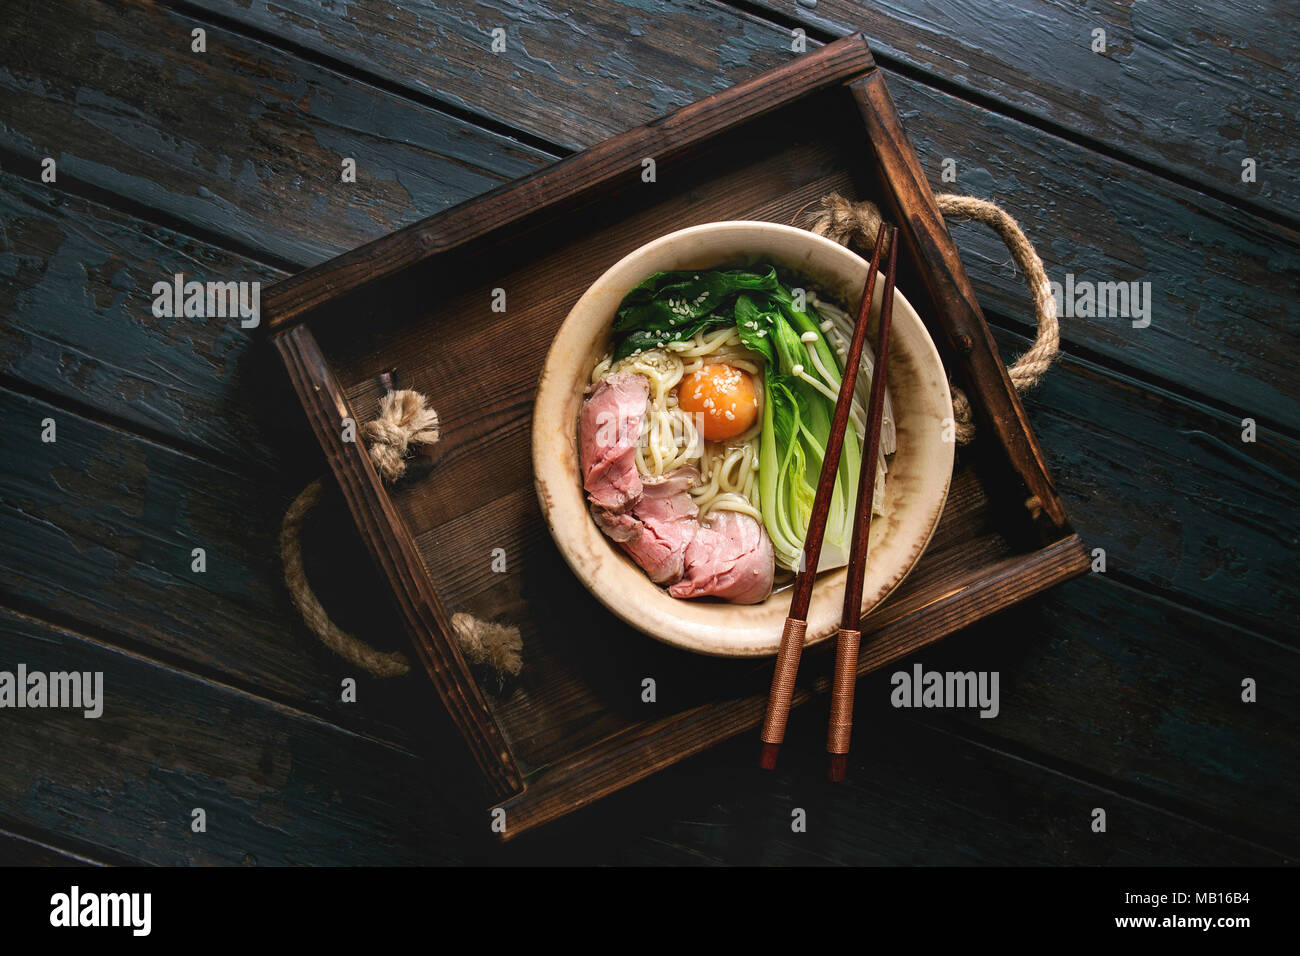 Asian dish udon noodles with egg yolk, sesame, mushrooms, boc choy, sliced sous vide cooked meat served in ceramic bowl with spoon and chopsticks on w - Stock Image